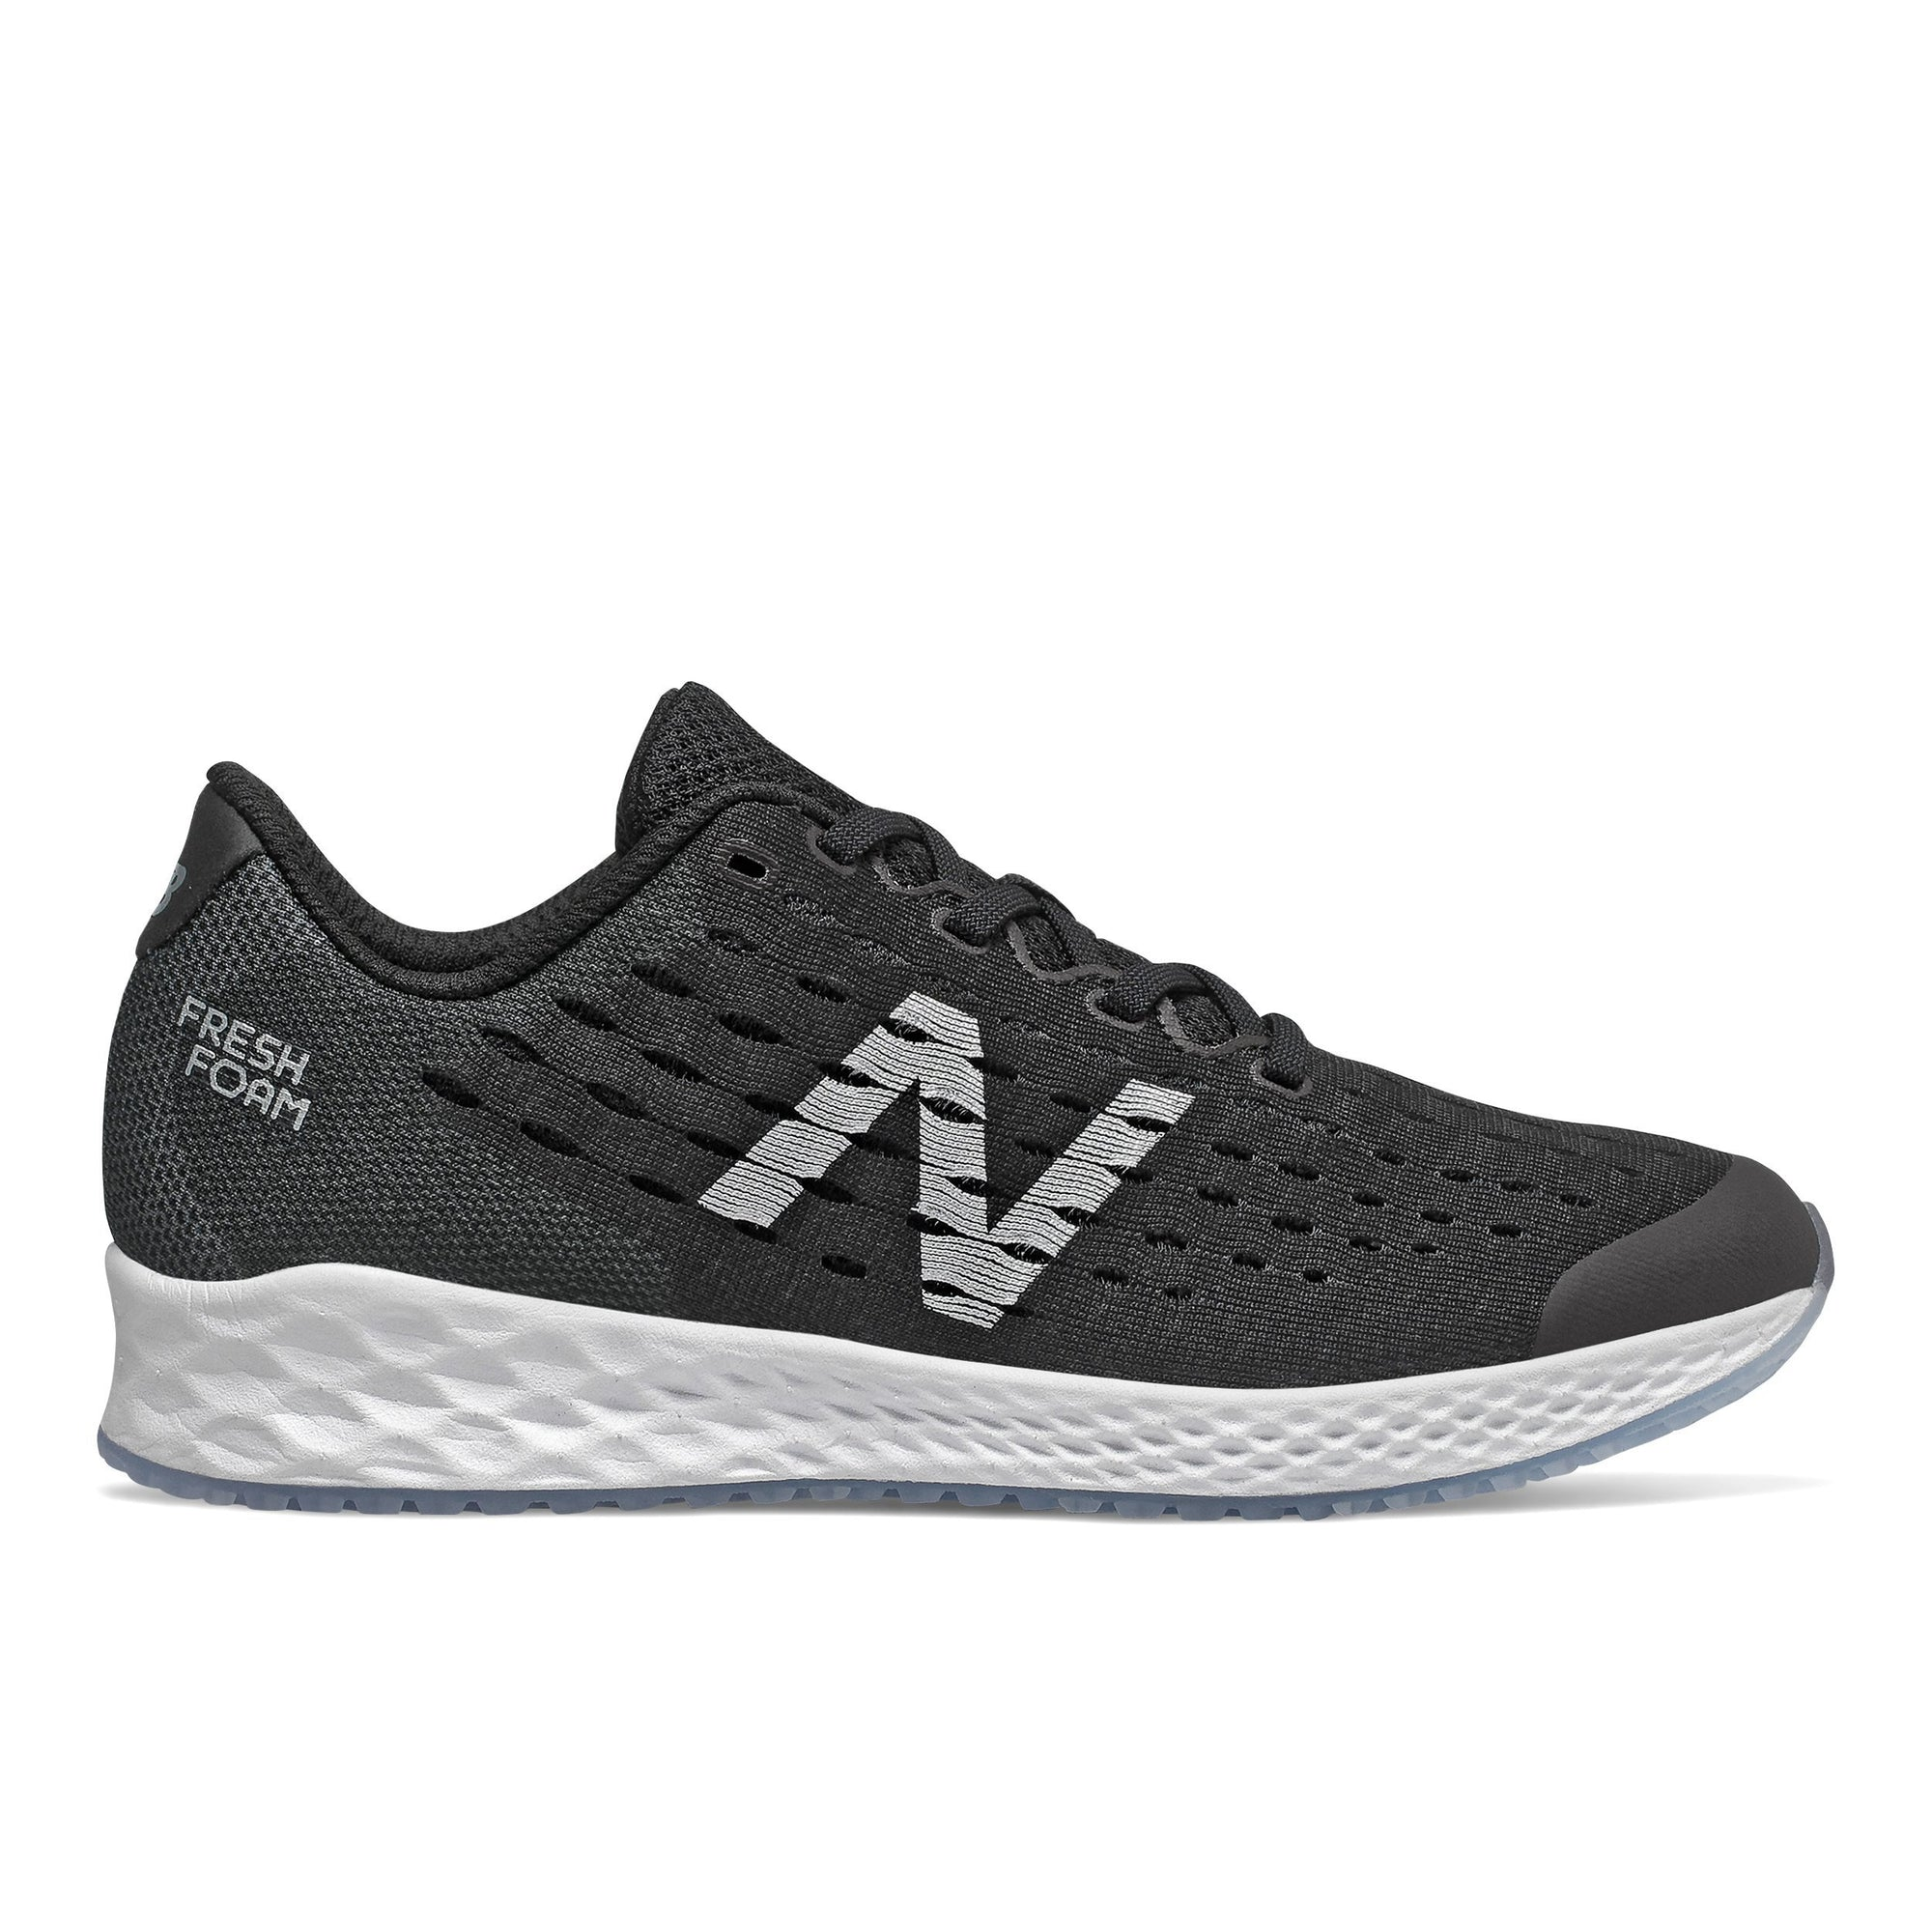 New Balance Kids Fresh Foam Zante Pursuit - Black/White SP-Footwear-Kids New Balance